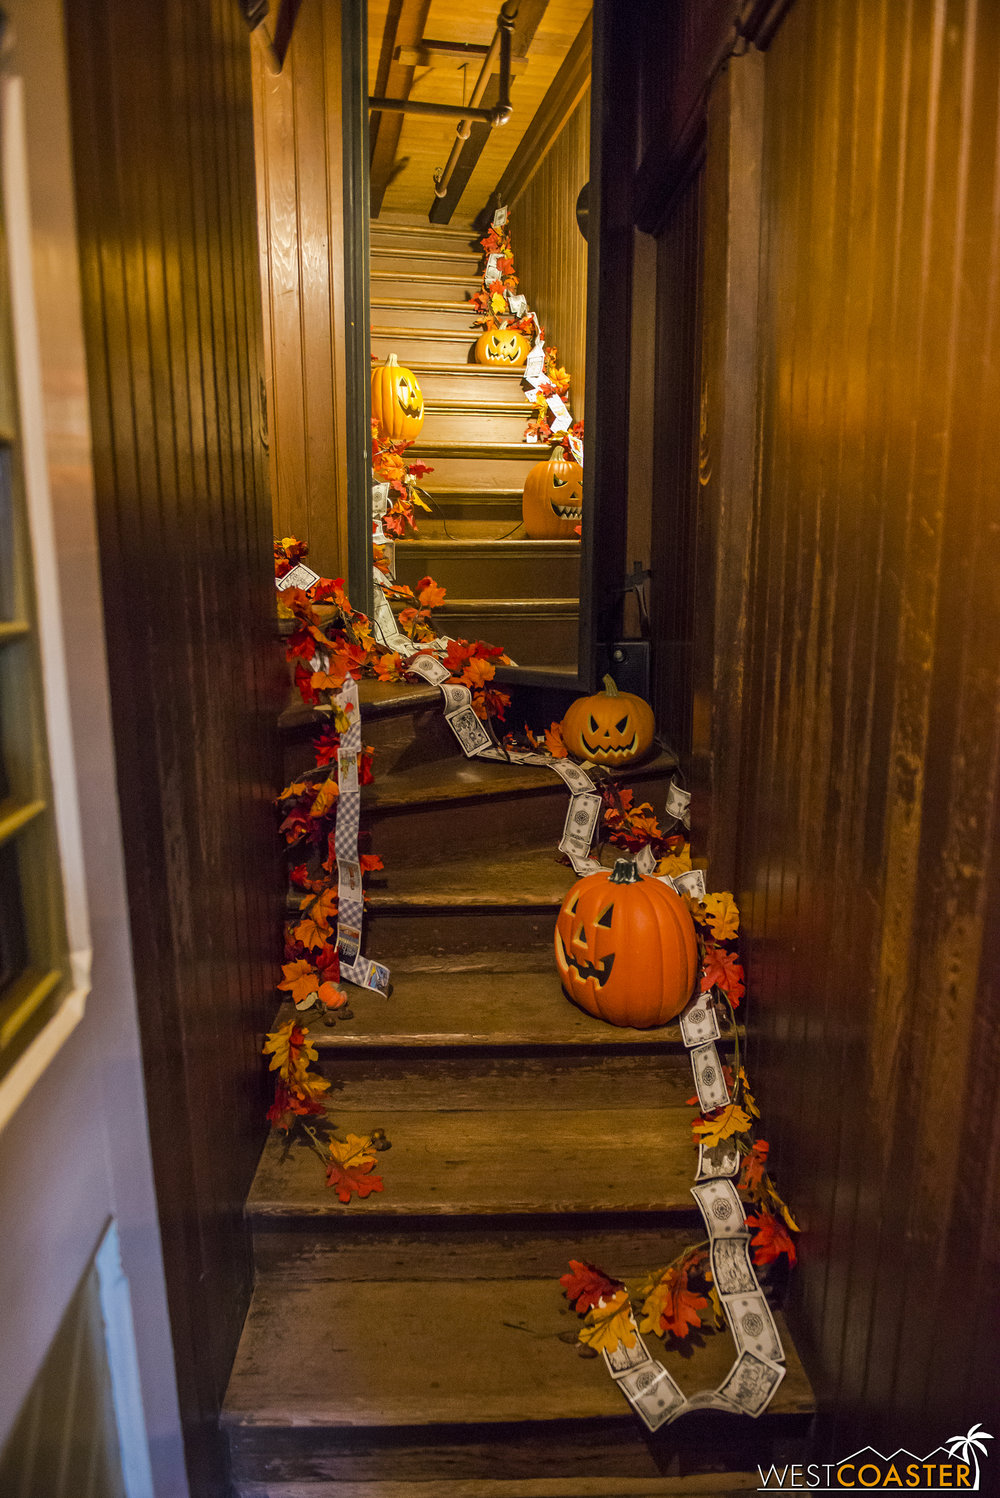 The famous stairway to nowhere is decorated with tarot cards and jack-o-lanterns for Halloween.